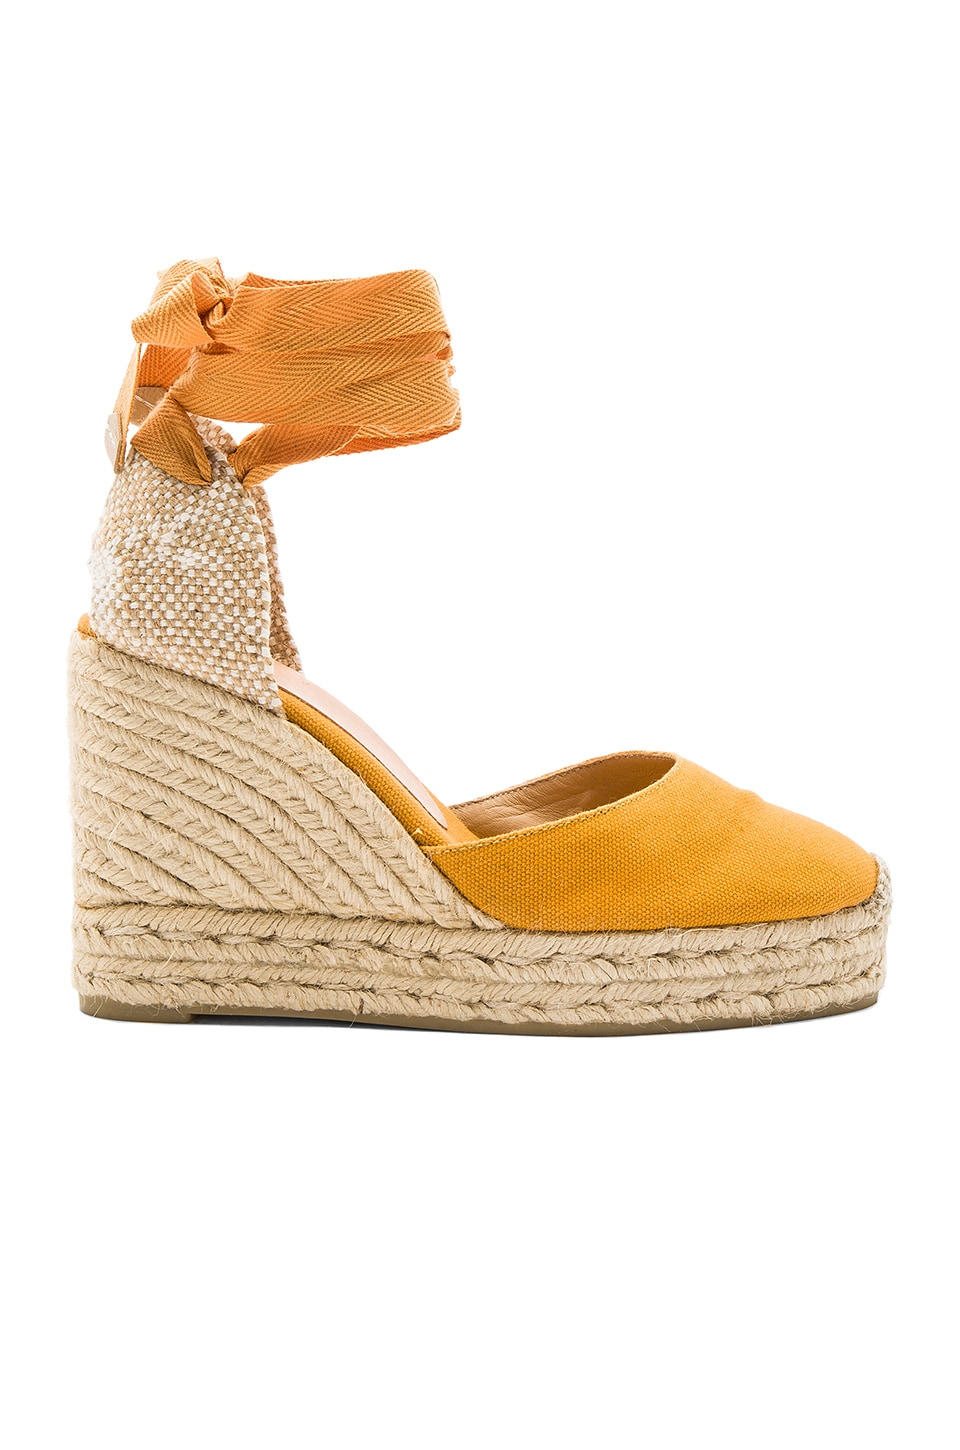 Castaner Carina Wedge in Ocre